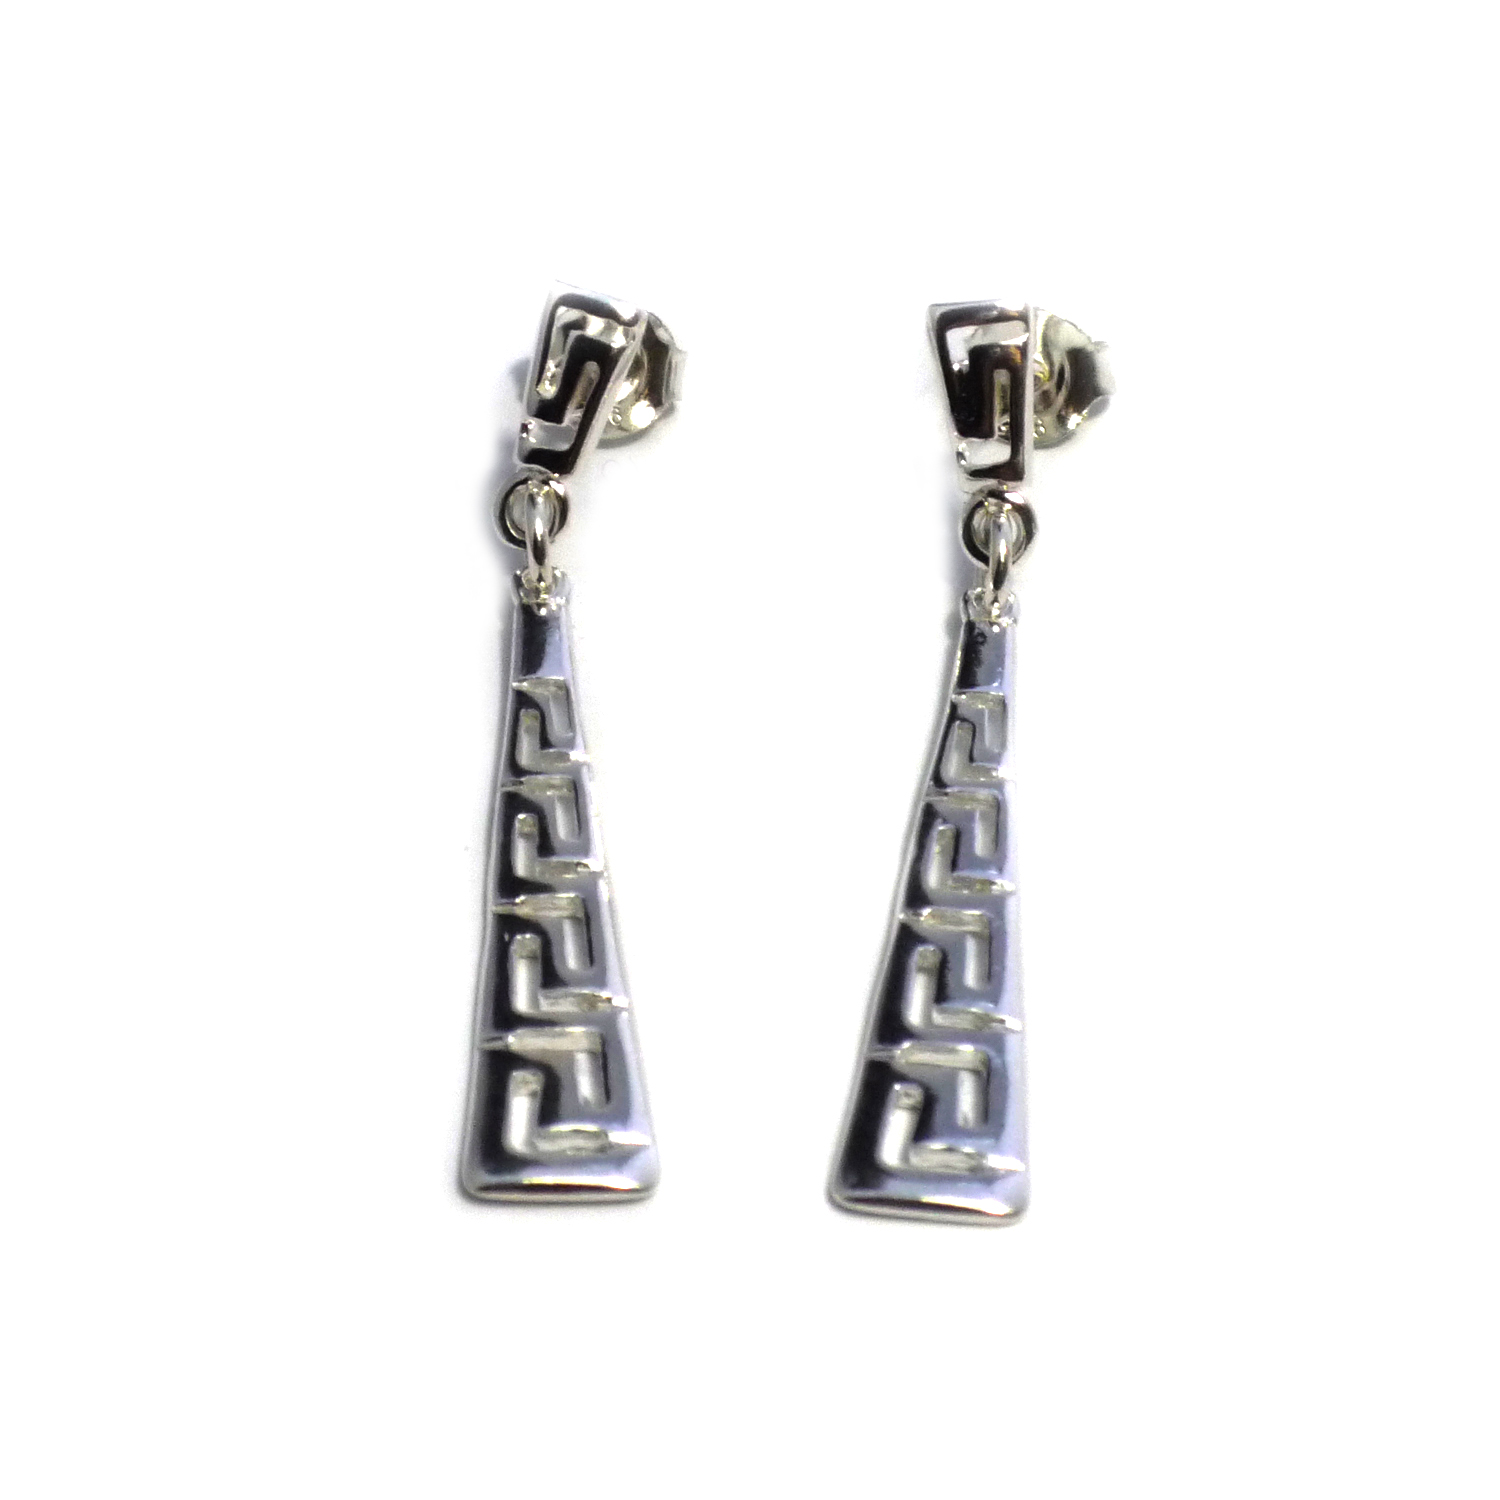 Sterling Silver Rhodium Plated Ancient Greek Key Drop Earrings Inspired from the of Greek ancient jewelry era, designed  and shaped into a  meander  also known as Greek key design, makes this timeless pair of dangle earrings a staple of a 3000 year old history.